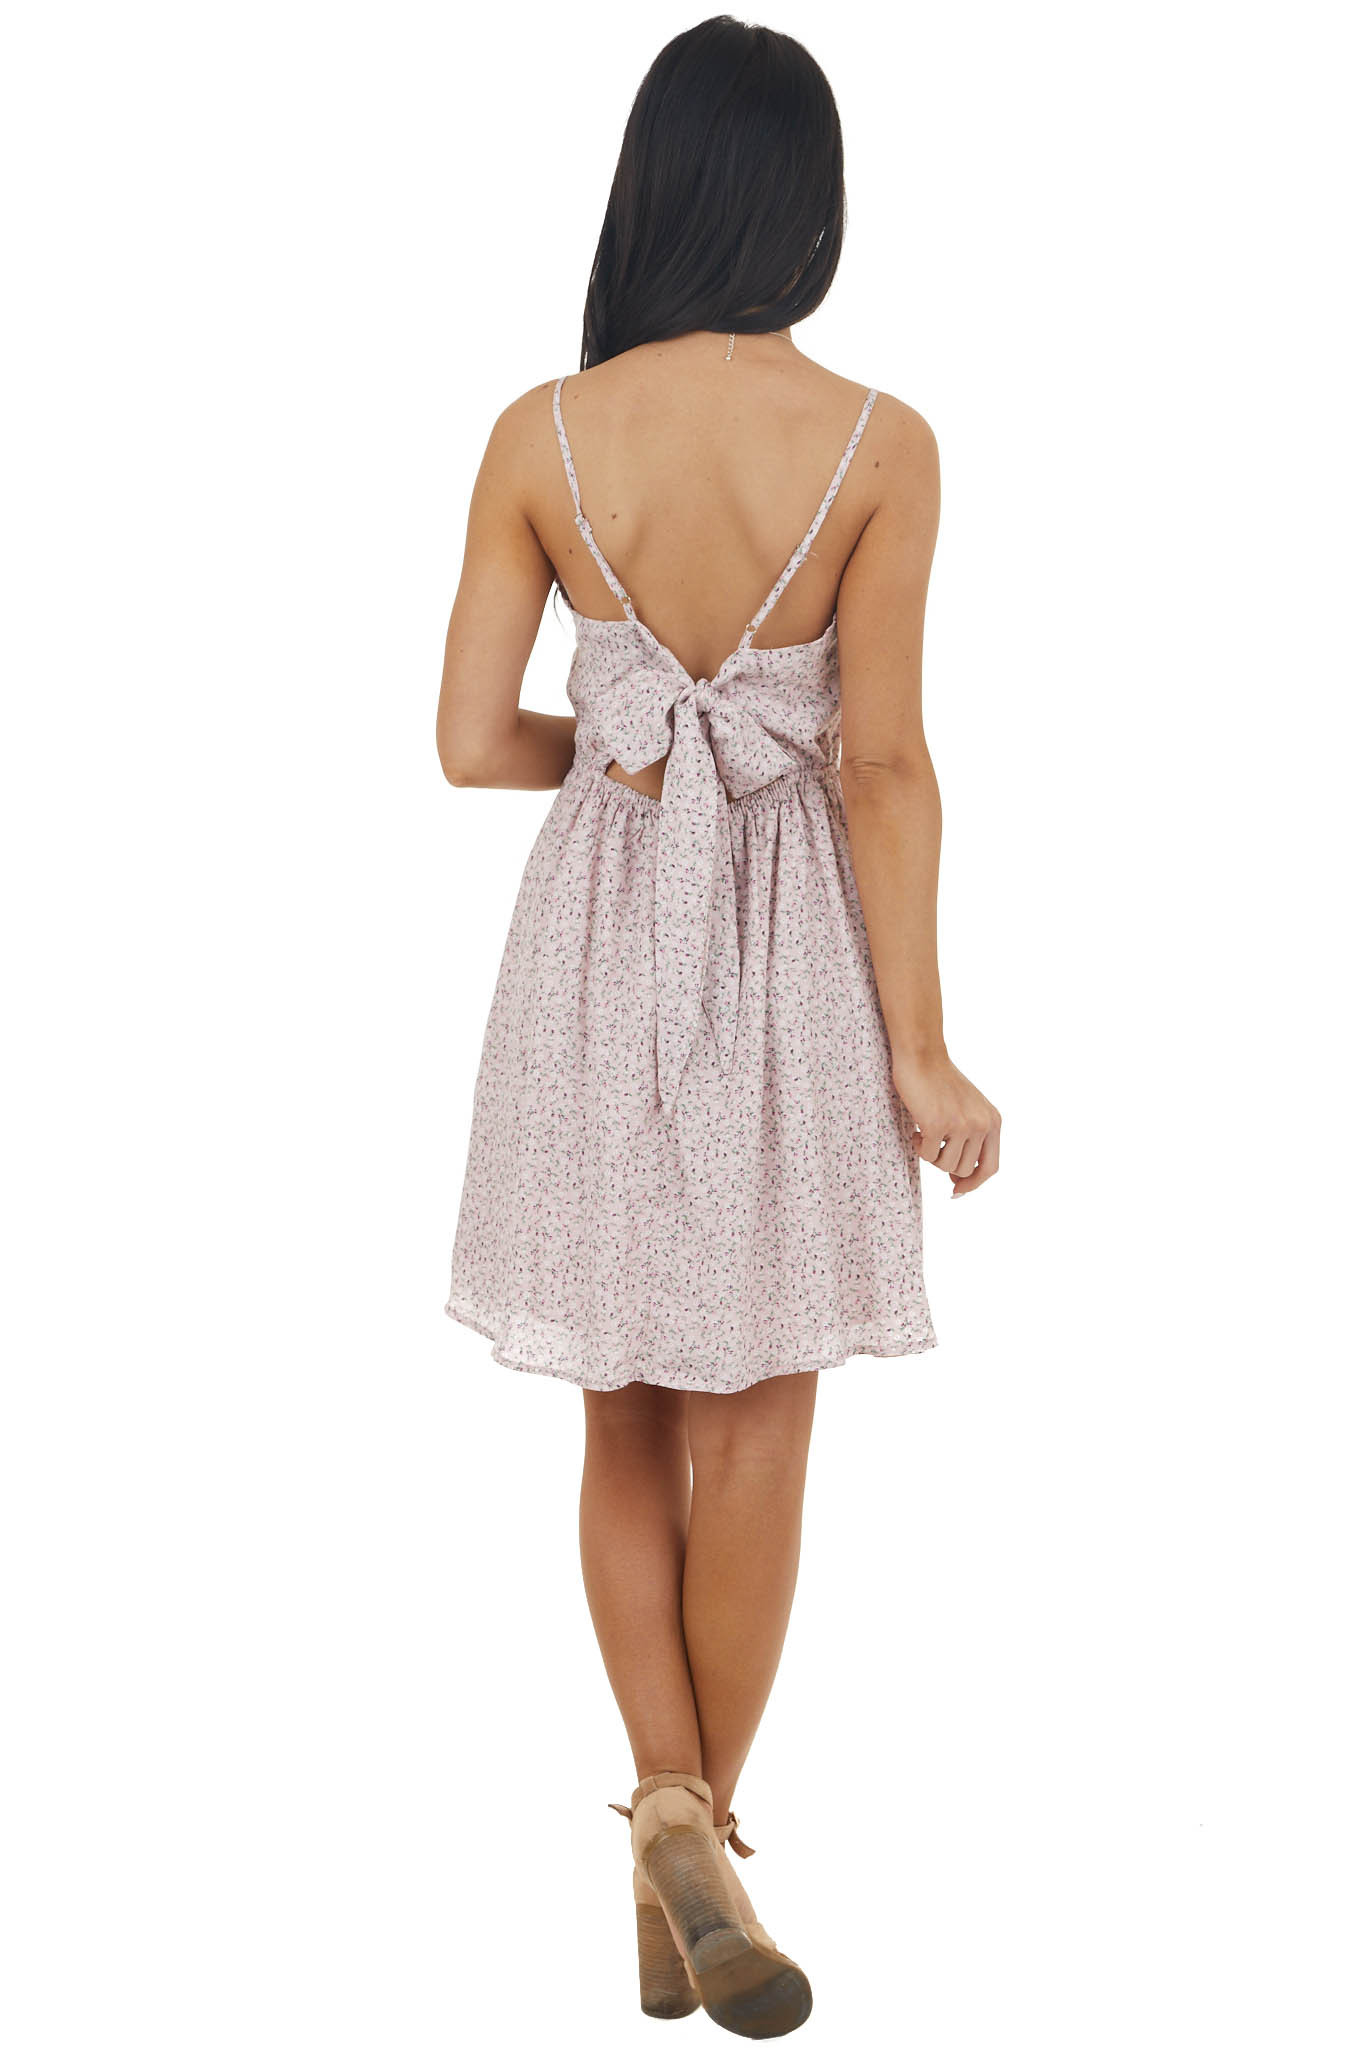 Dusty Blush Sleeveless Ditsy Floral Dress with Tie Details